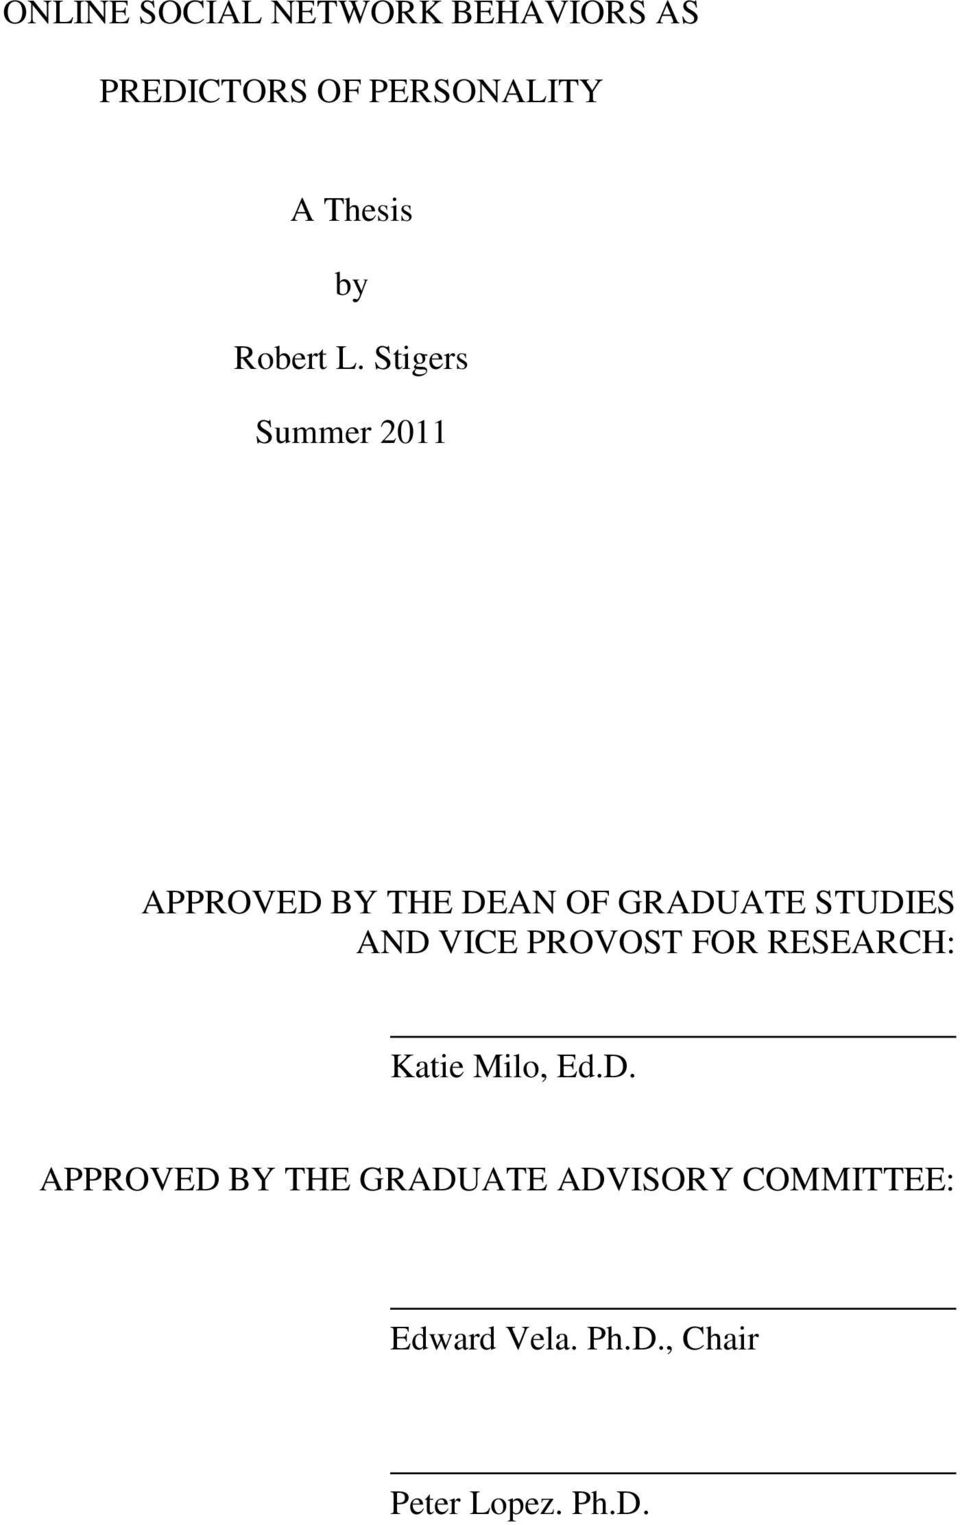 Stigers Summer 2011 APPROVED BY THE DEAN OF GRADUATE STUDIES AND VICE